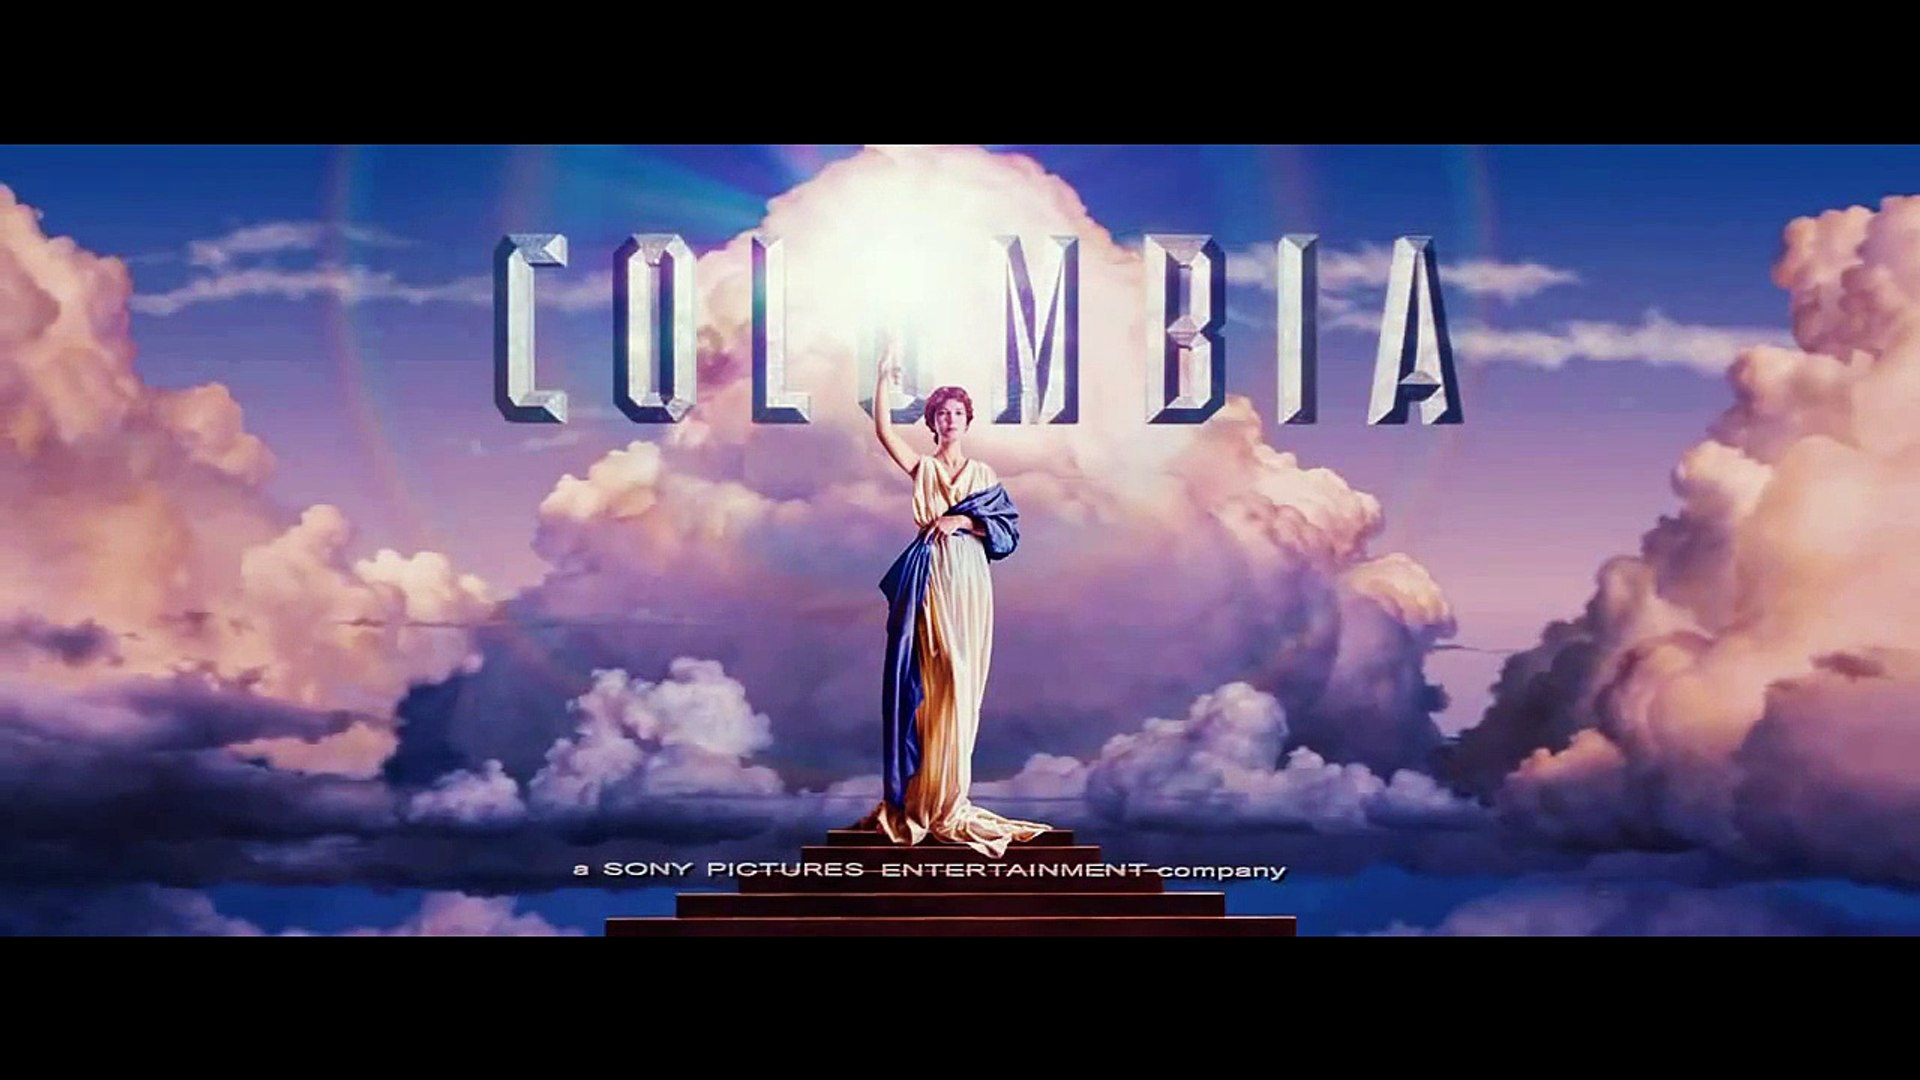 Cool World 1992 Full Movie In Hd Quality Video Dailymotion